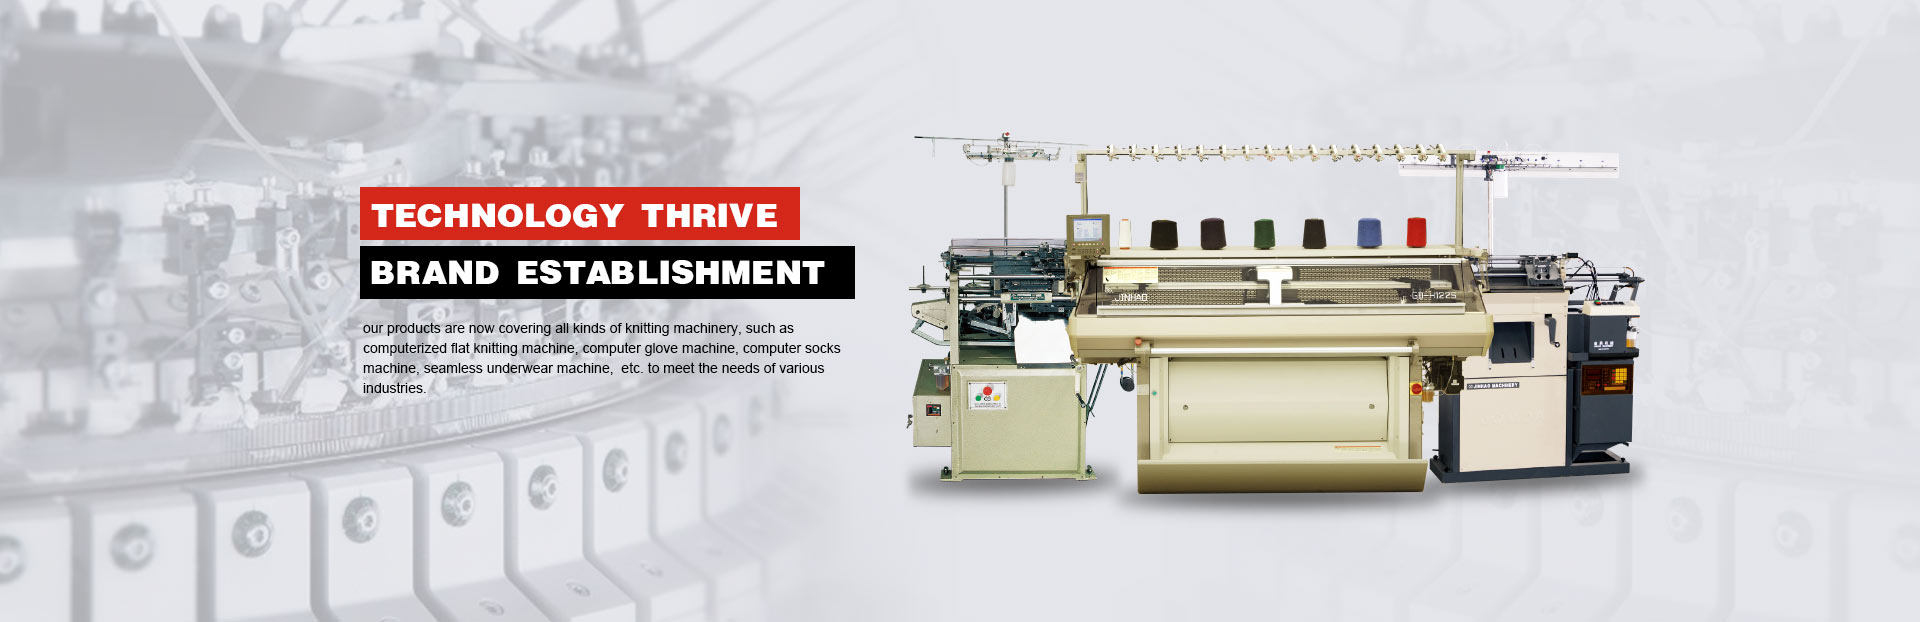 Main brands and producing countries of flat knitting machines